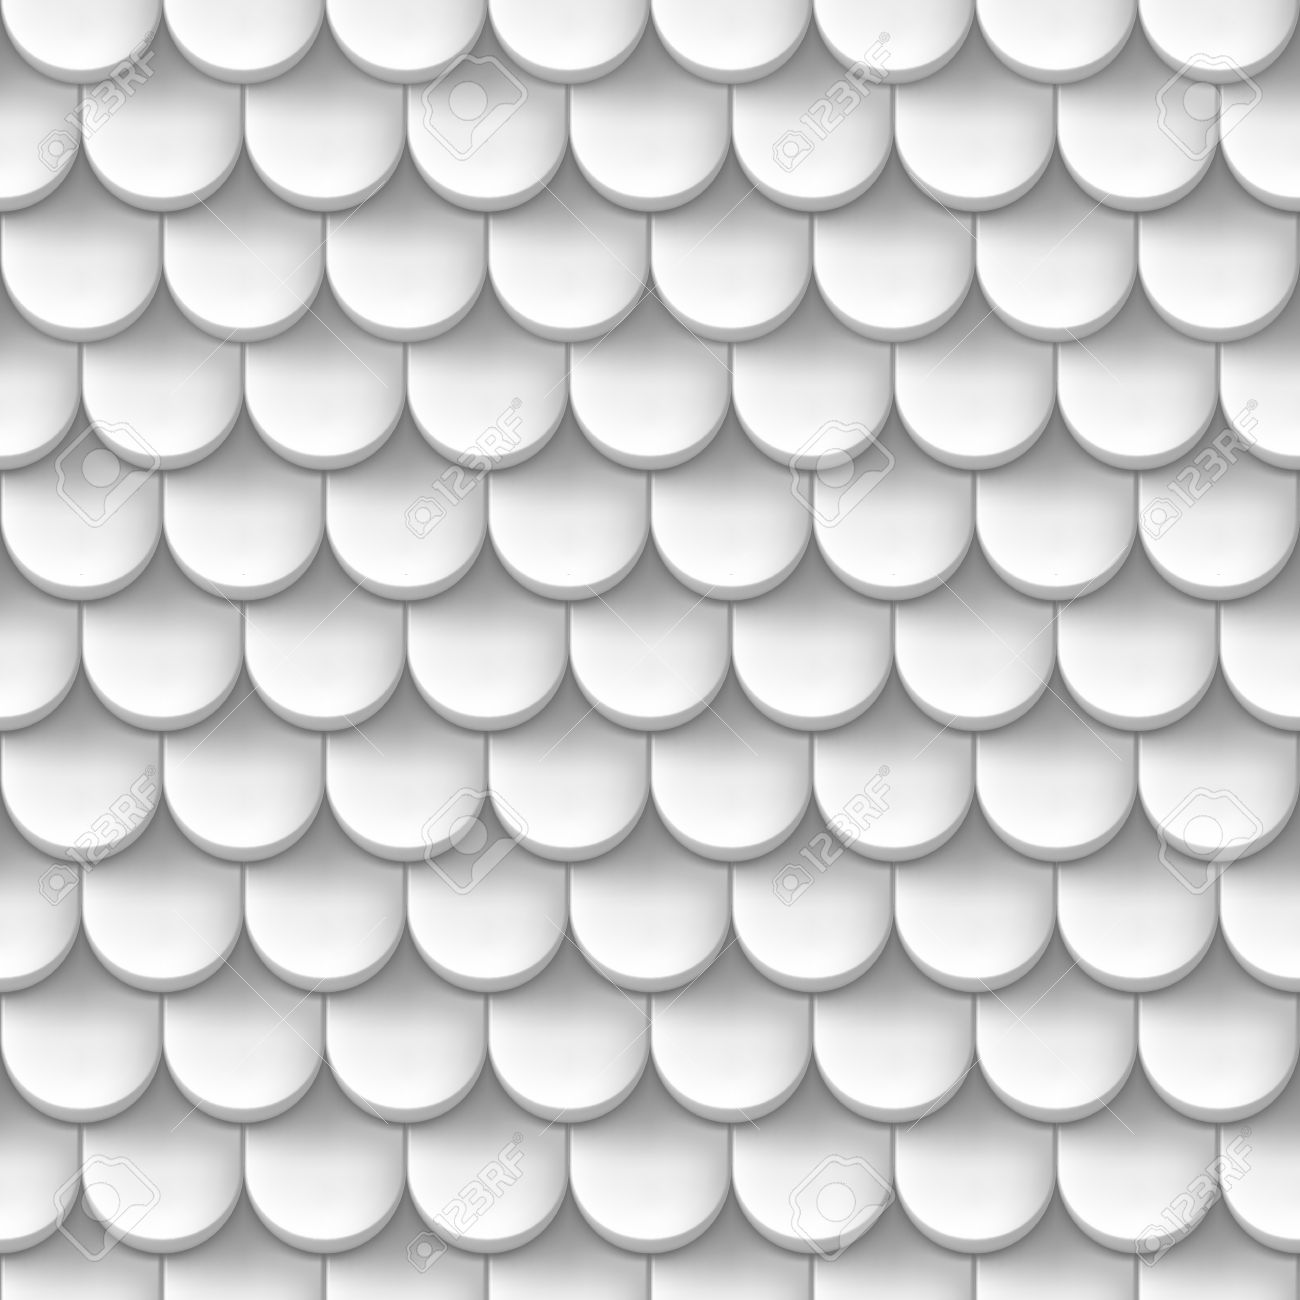 Abstract Background With Roof Tile Pattern In White Color. Royalty.